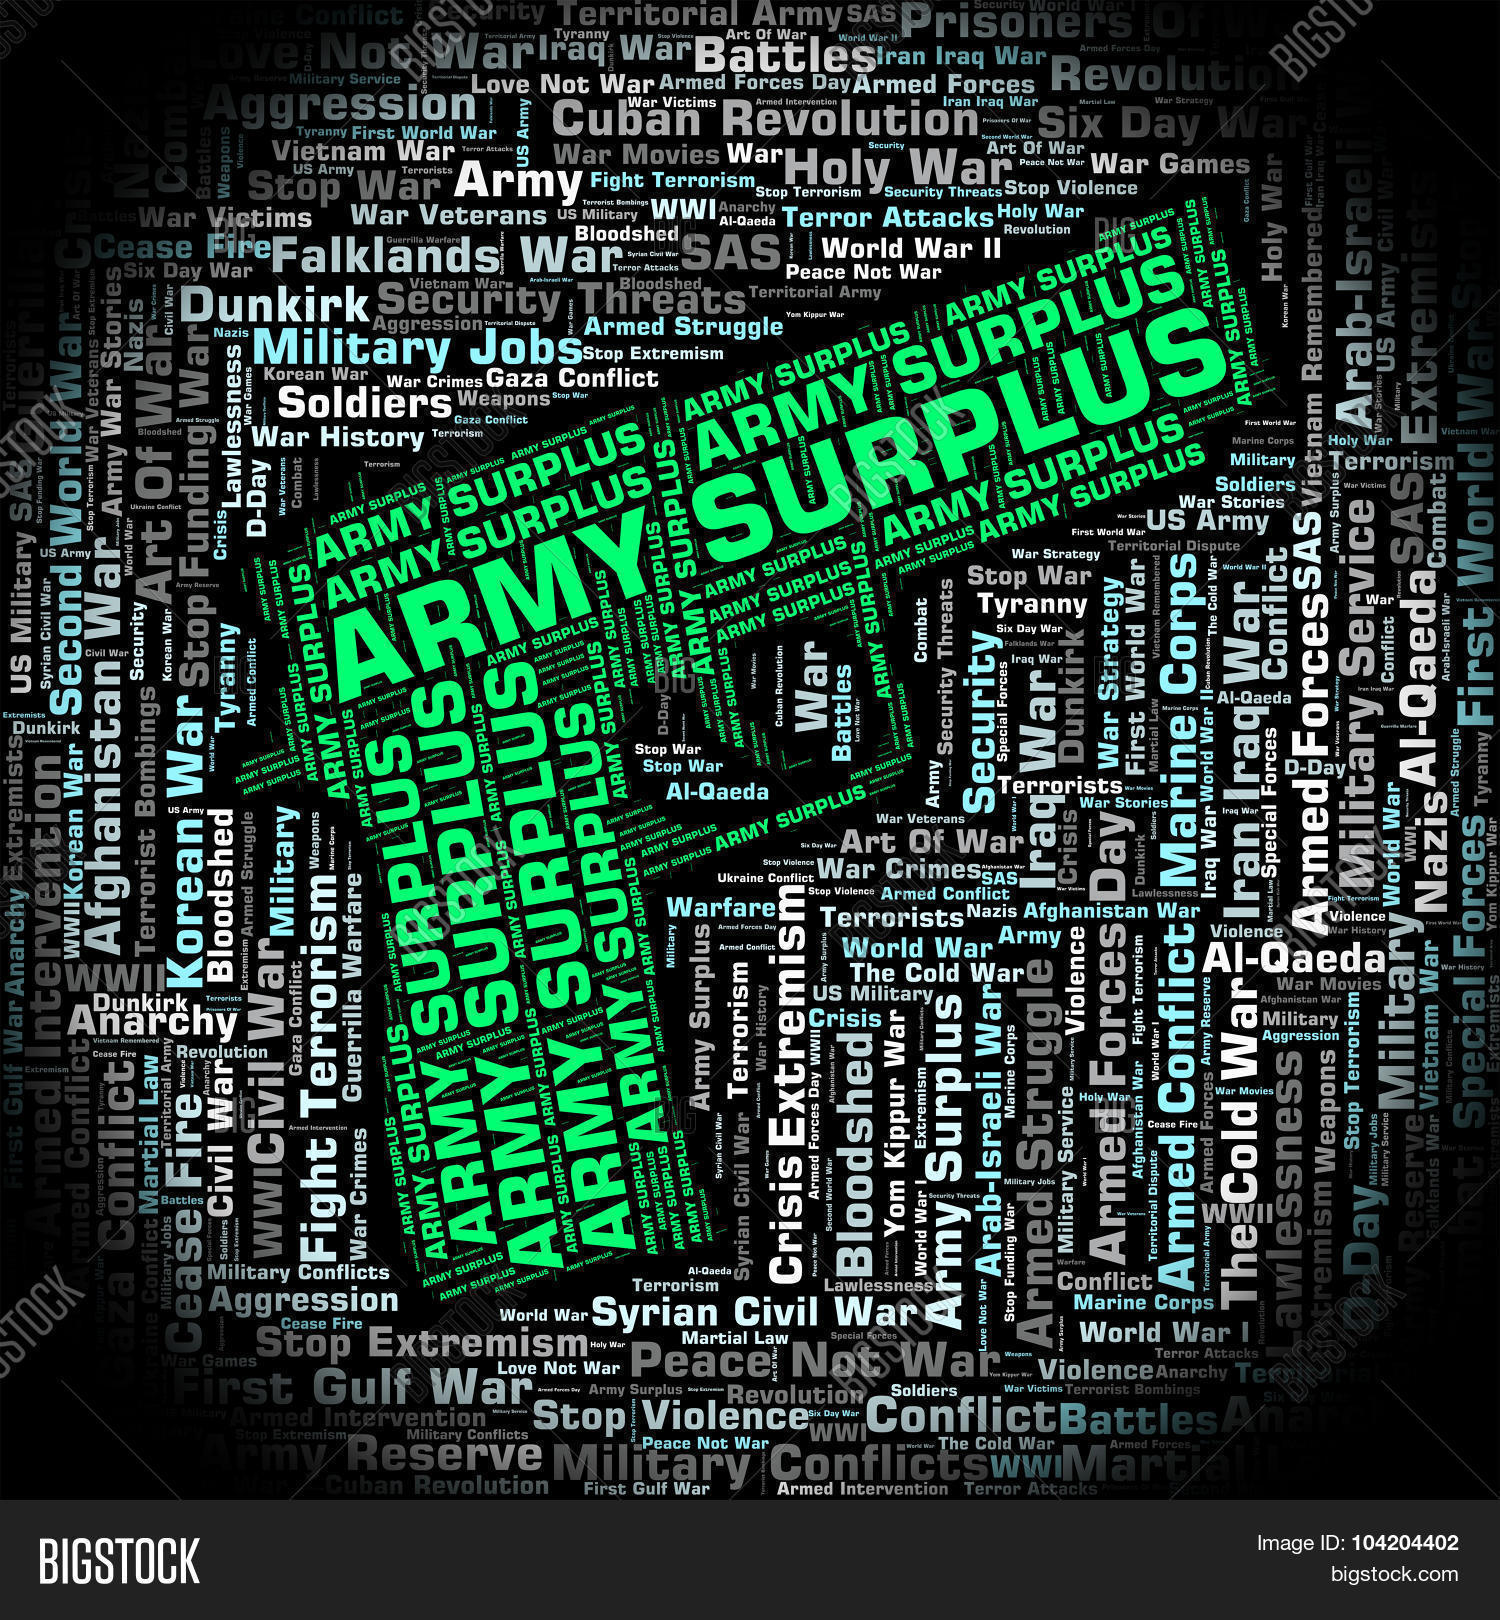 🔥 Army Surplus Indicates Armed Services And Armies